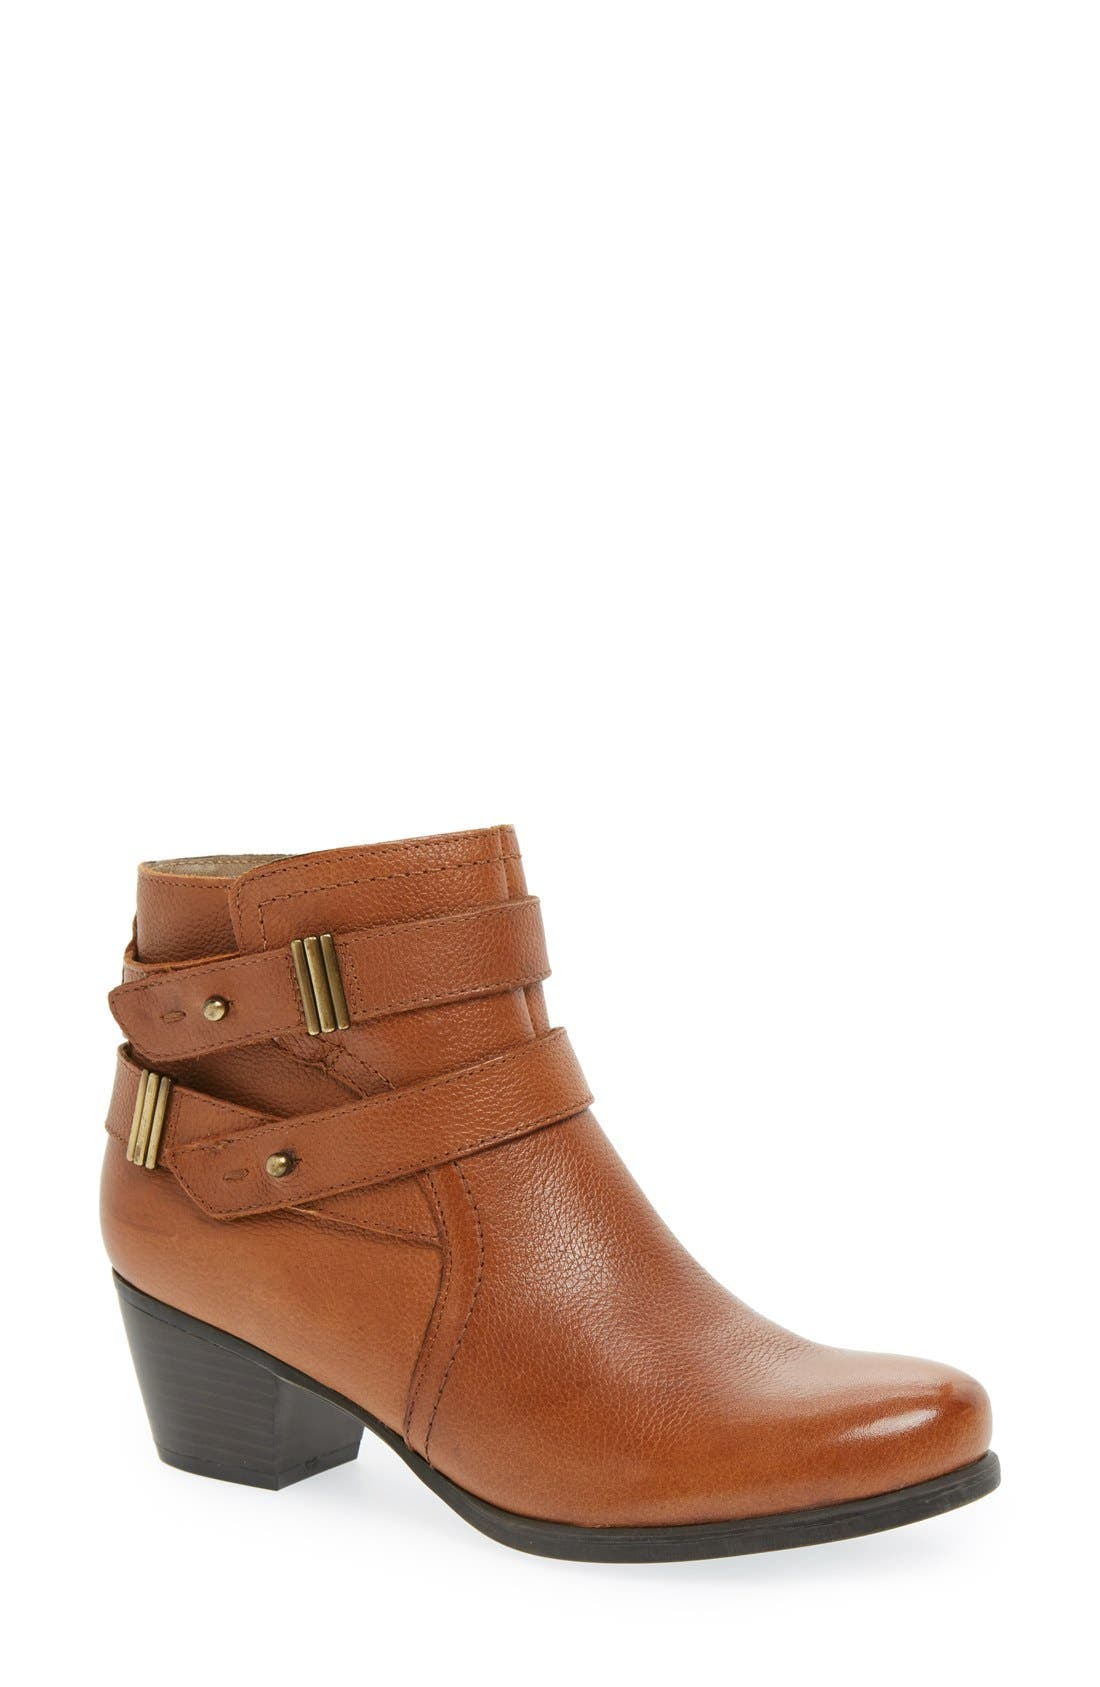 Alternate Image 1 Selected - Naturalizer 'Kepler' Block Heel Bootie (Women)